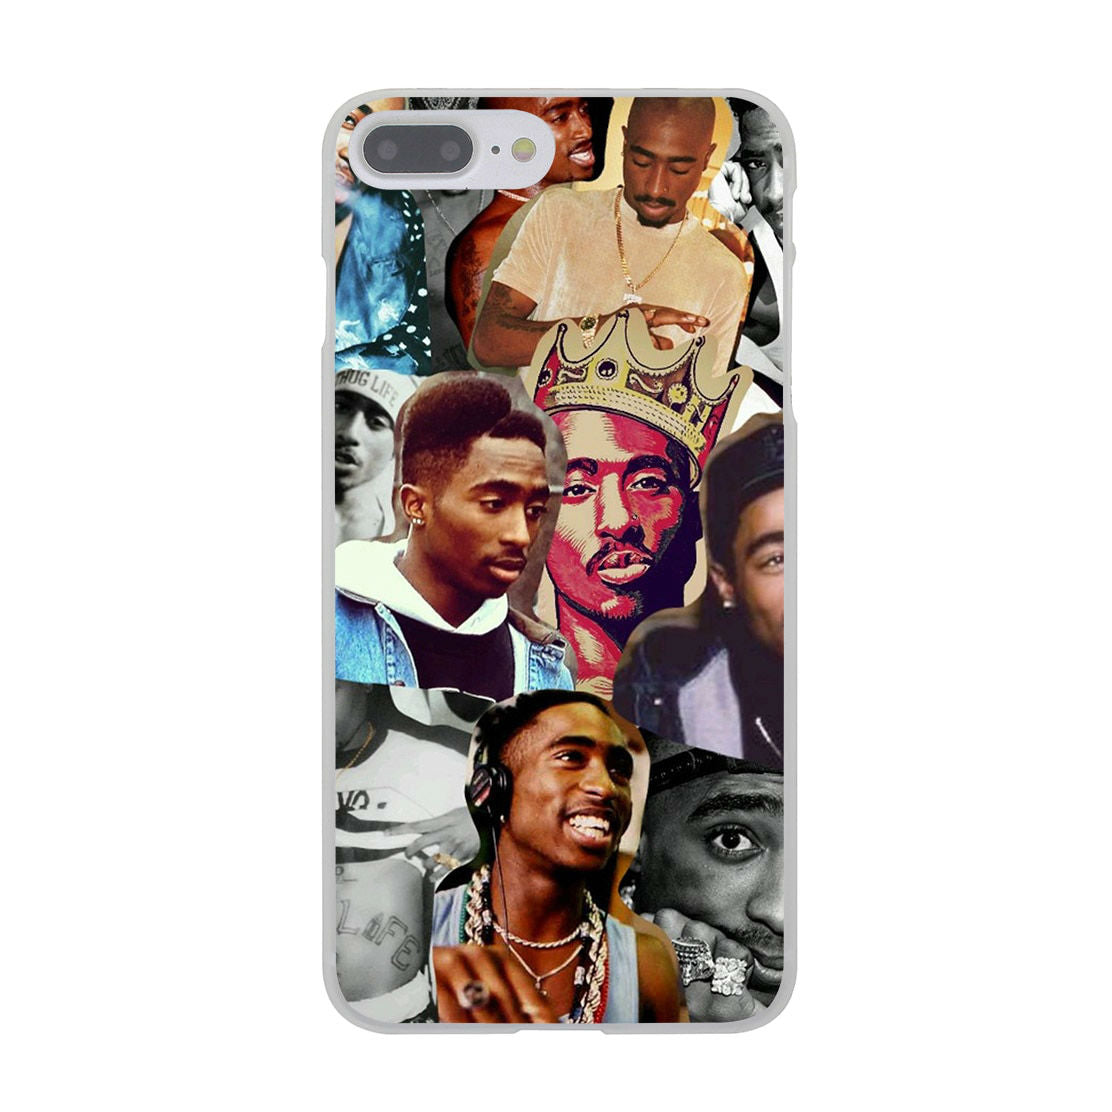 Tupac Shakur Hard Cover iPhone Case